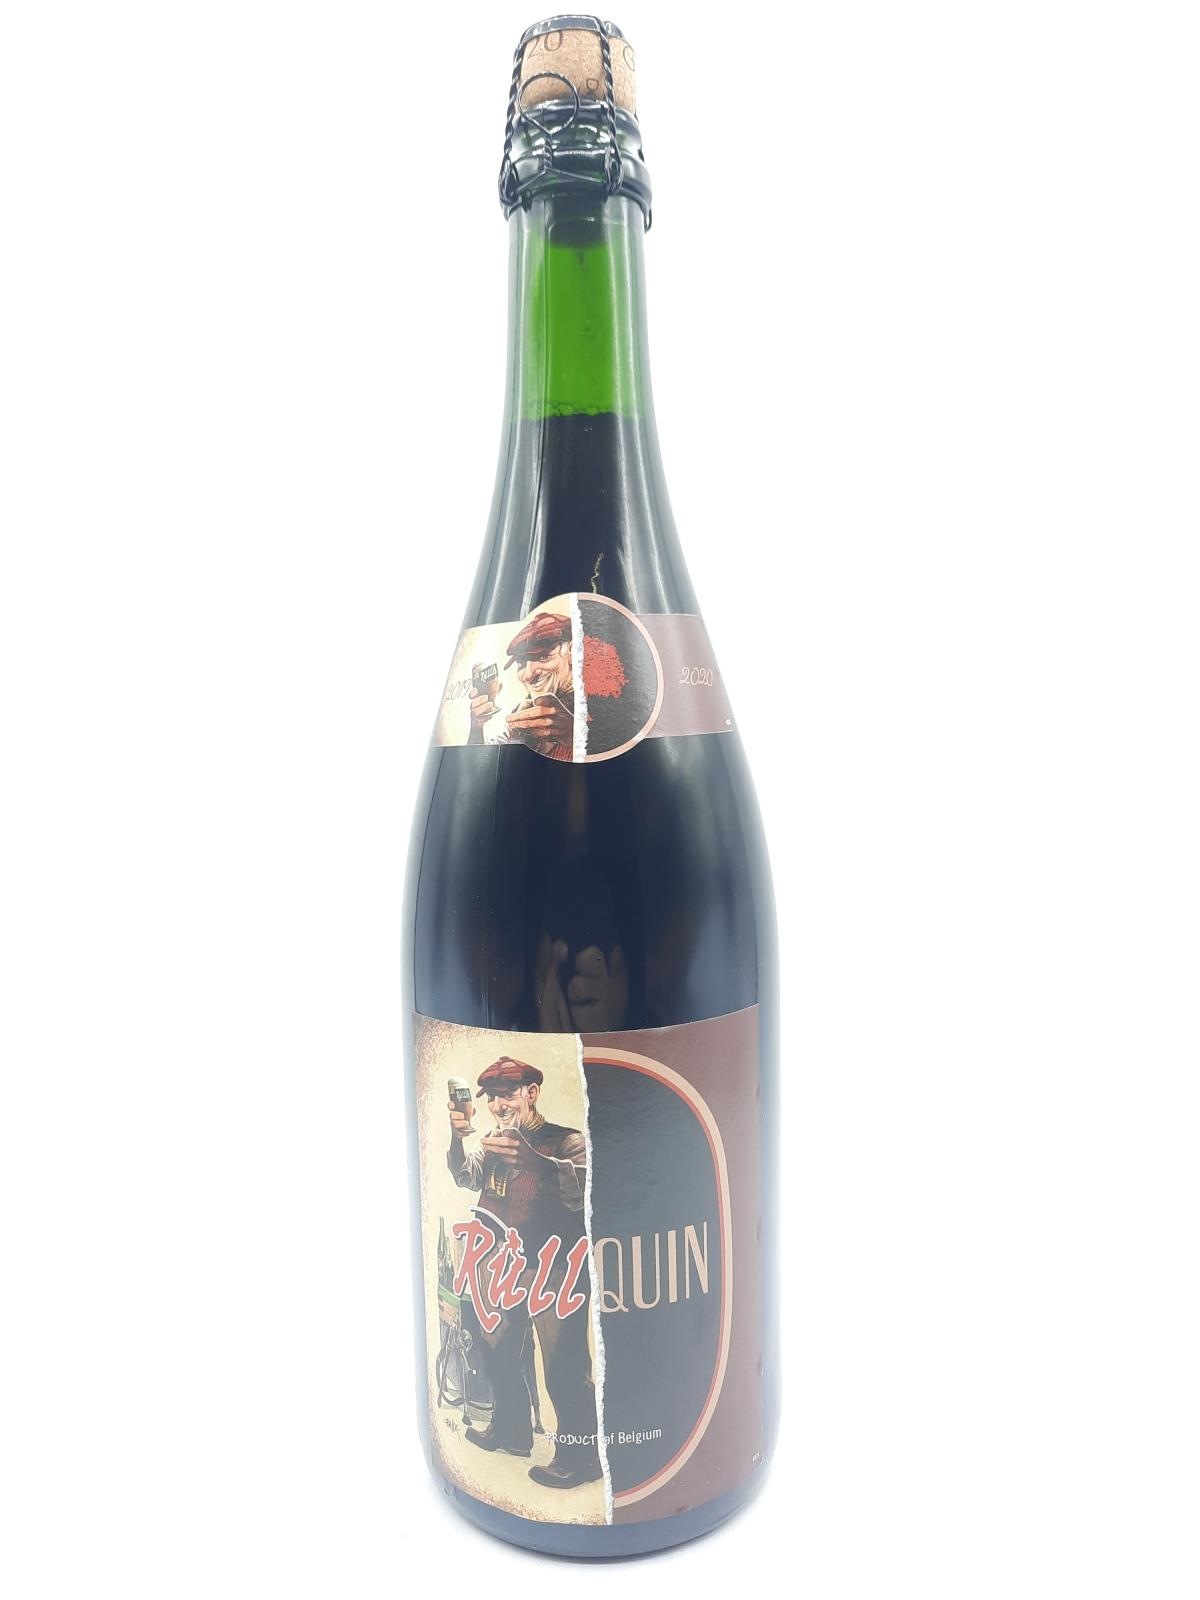 Image Rullquin 75cl